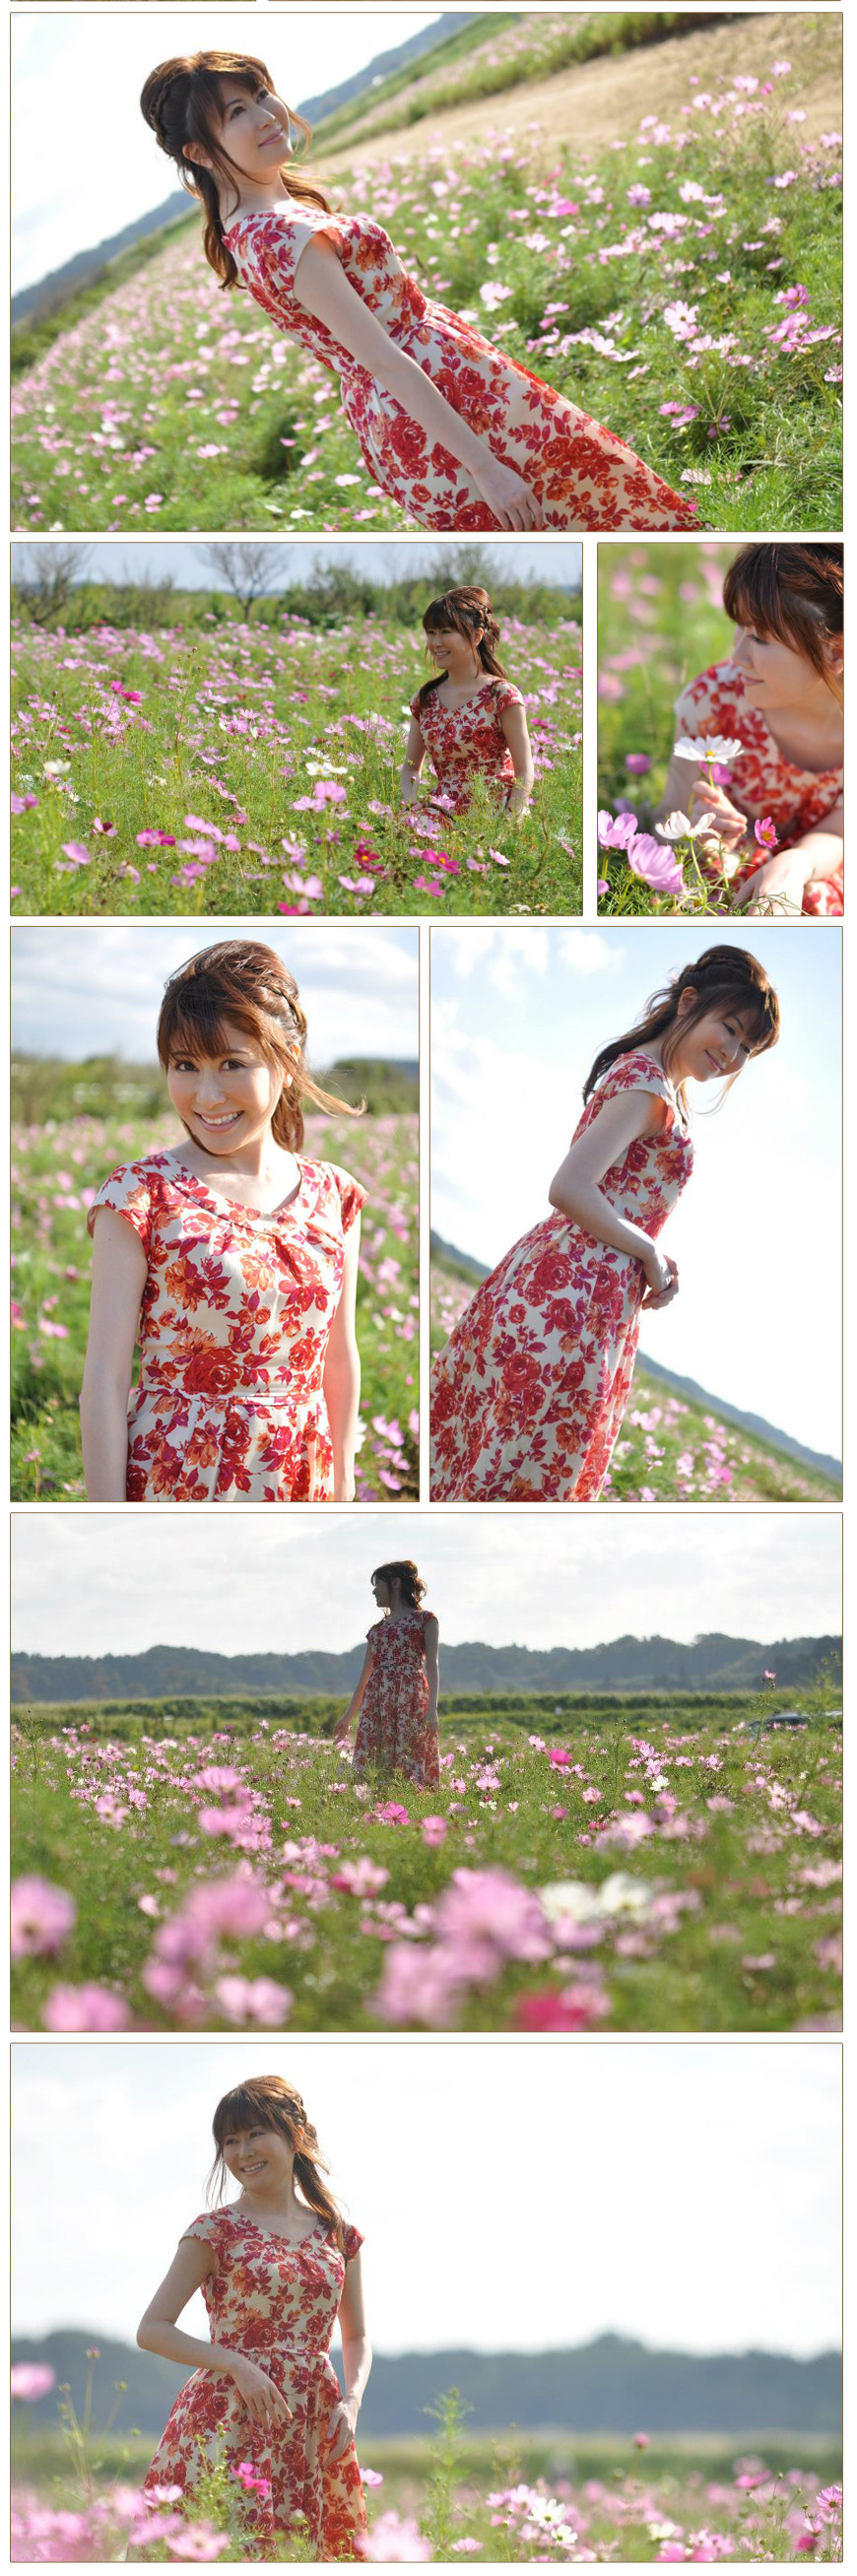 Red dress Flower Garden